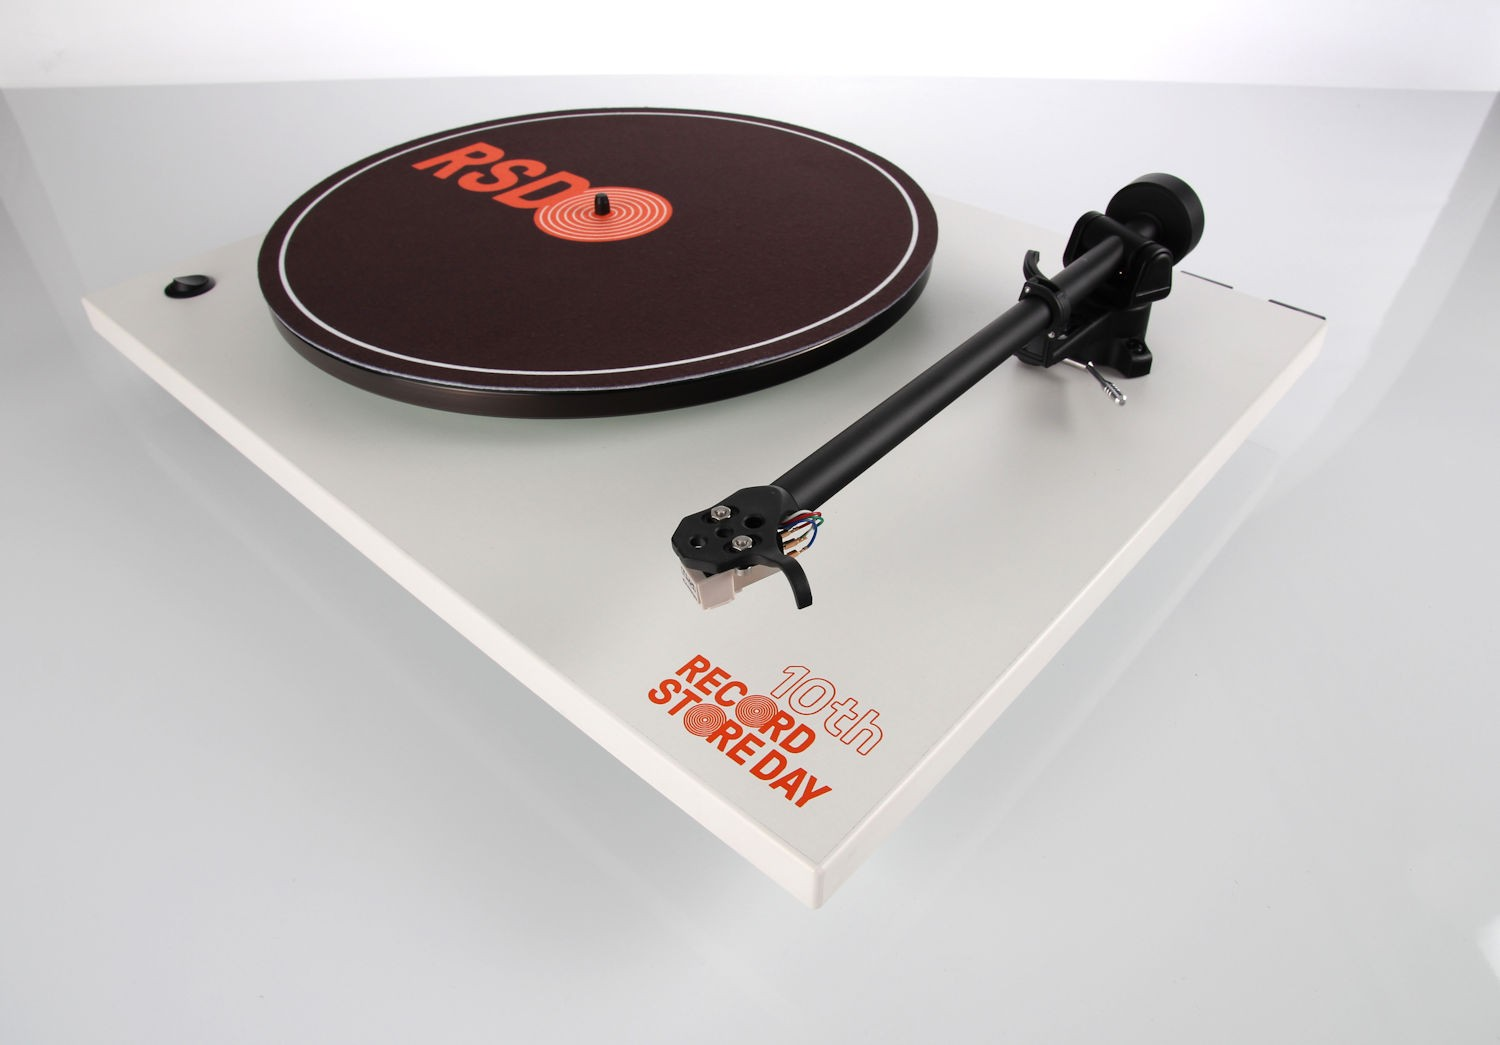 Rega - Record Store Day 2017 - 10th Anniversay Limited Edition Planar1/RP3 Hybrid